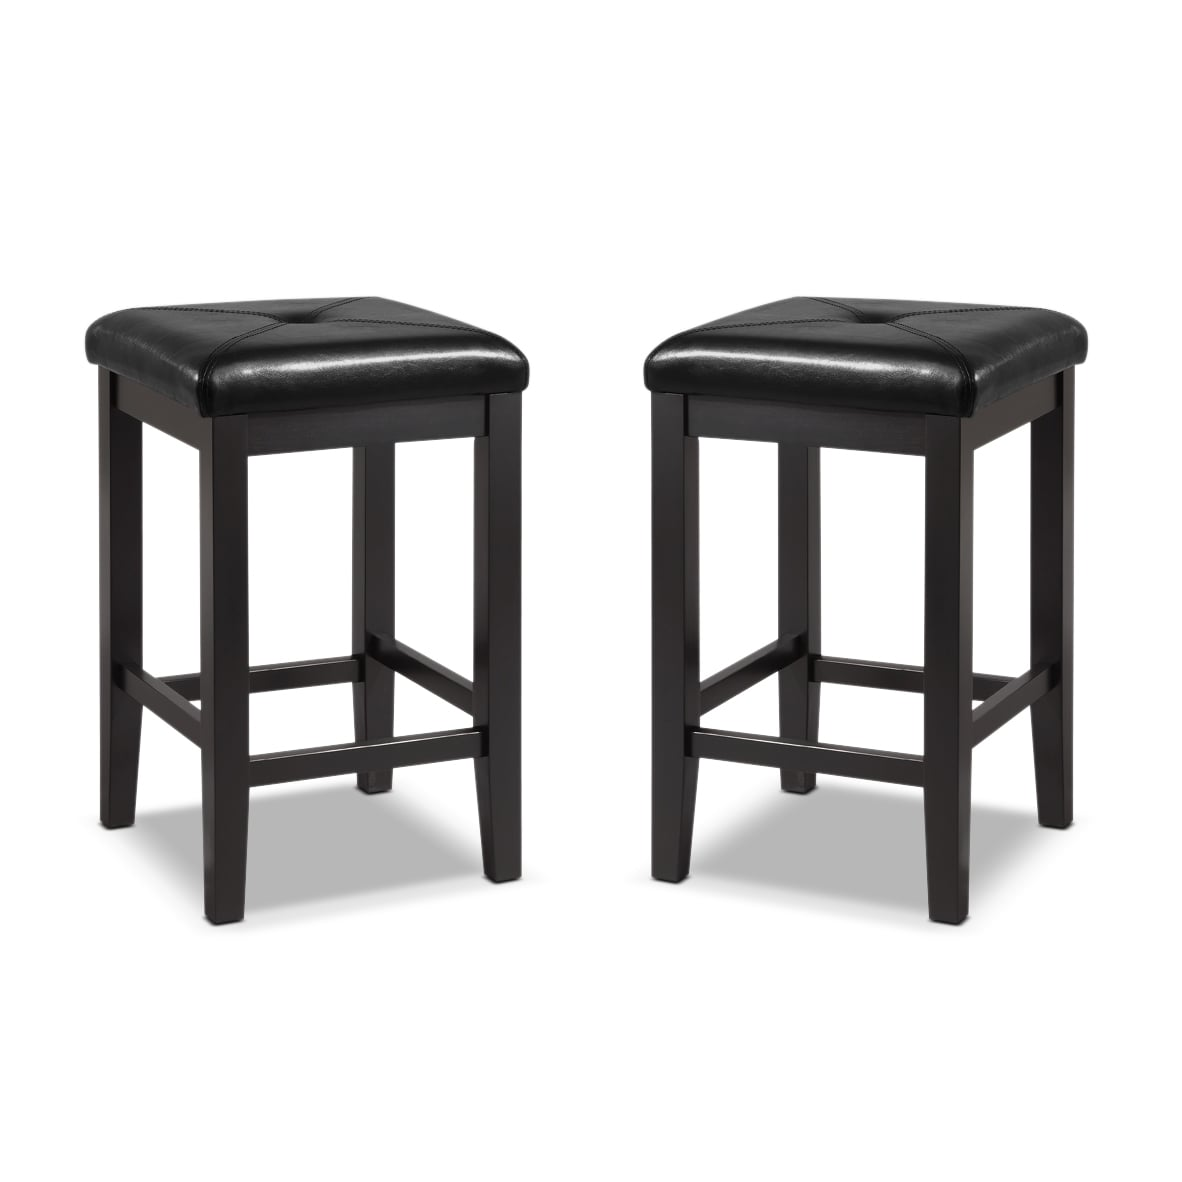 Dining Room Furniture - Bodega 2-Pack Barstools